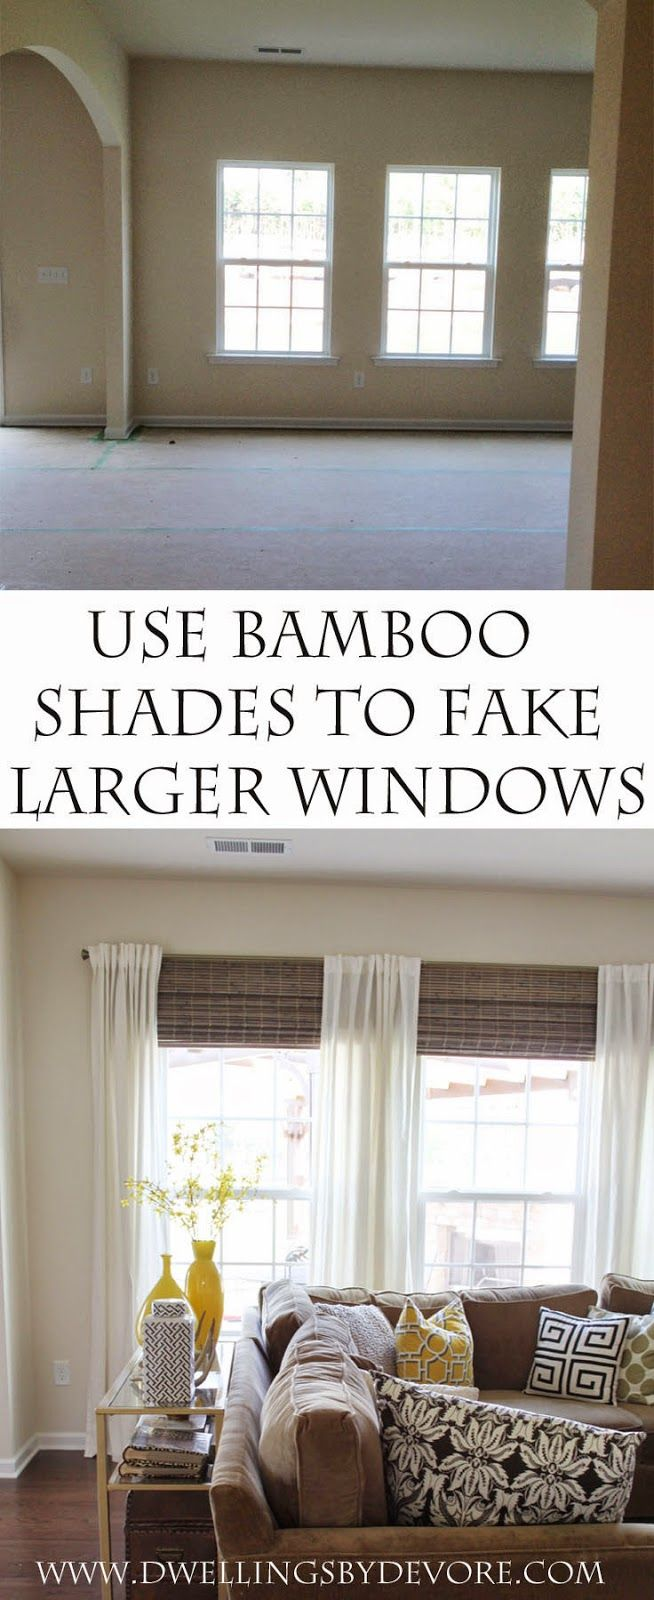 so smart use bamboo shades u0026 placed curtains to make your windows look larger diy interior design